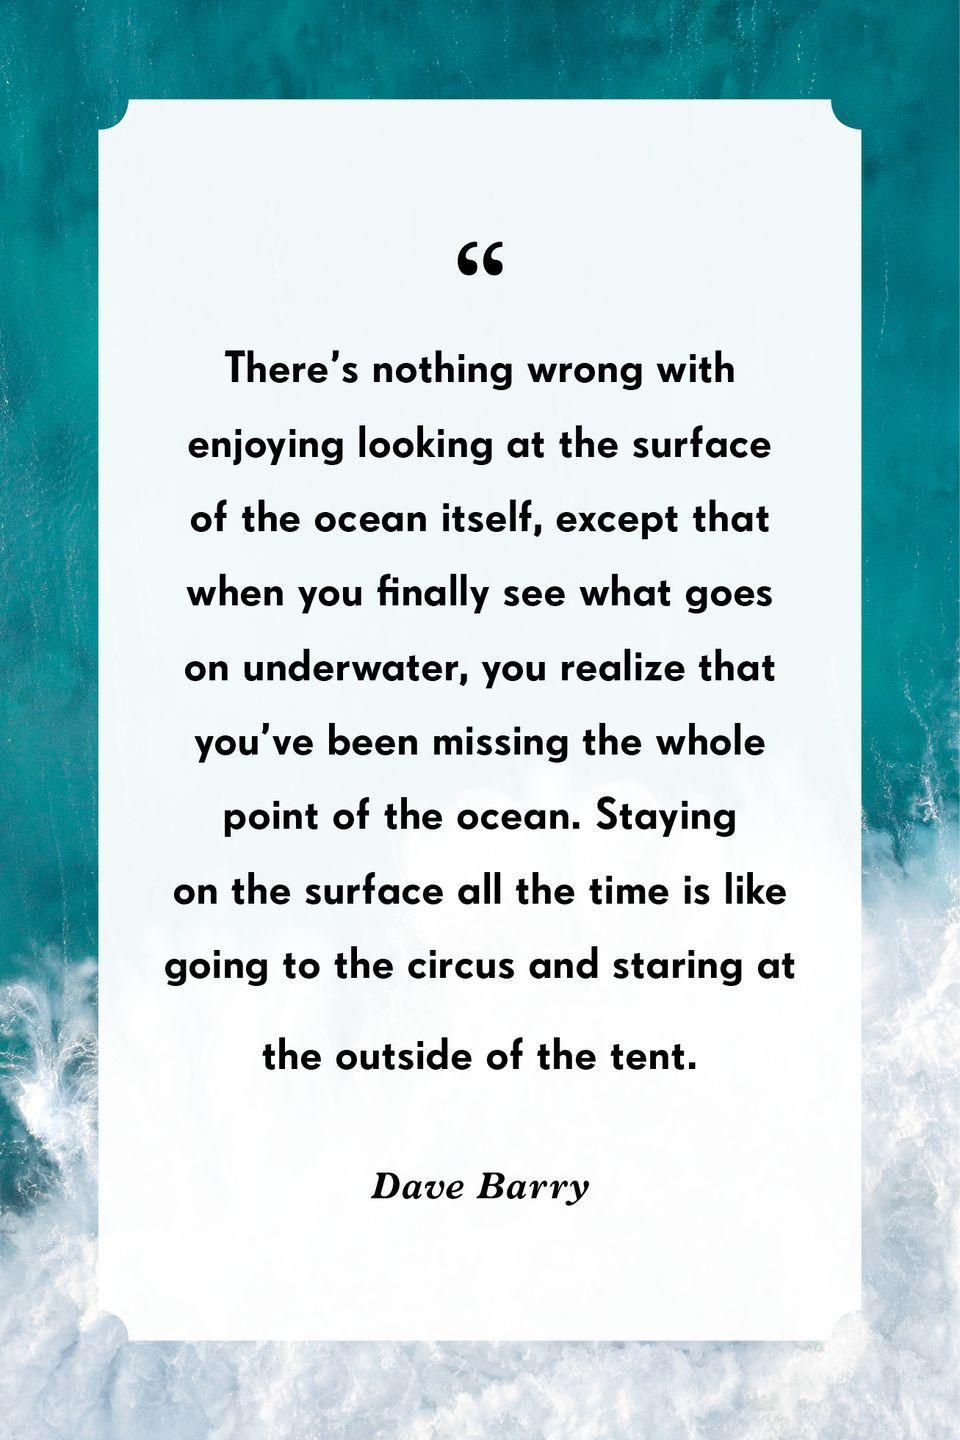 """<p>""""There's nothing wrong with enjoying looking at the surface of the ocean itself, except that when you finally see what goes on underwater, you realize that you've been missing the whole point of the ocean. Staying on the surface all the time is like going to the circus and staring at the outside of the tent.""""</p>"""